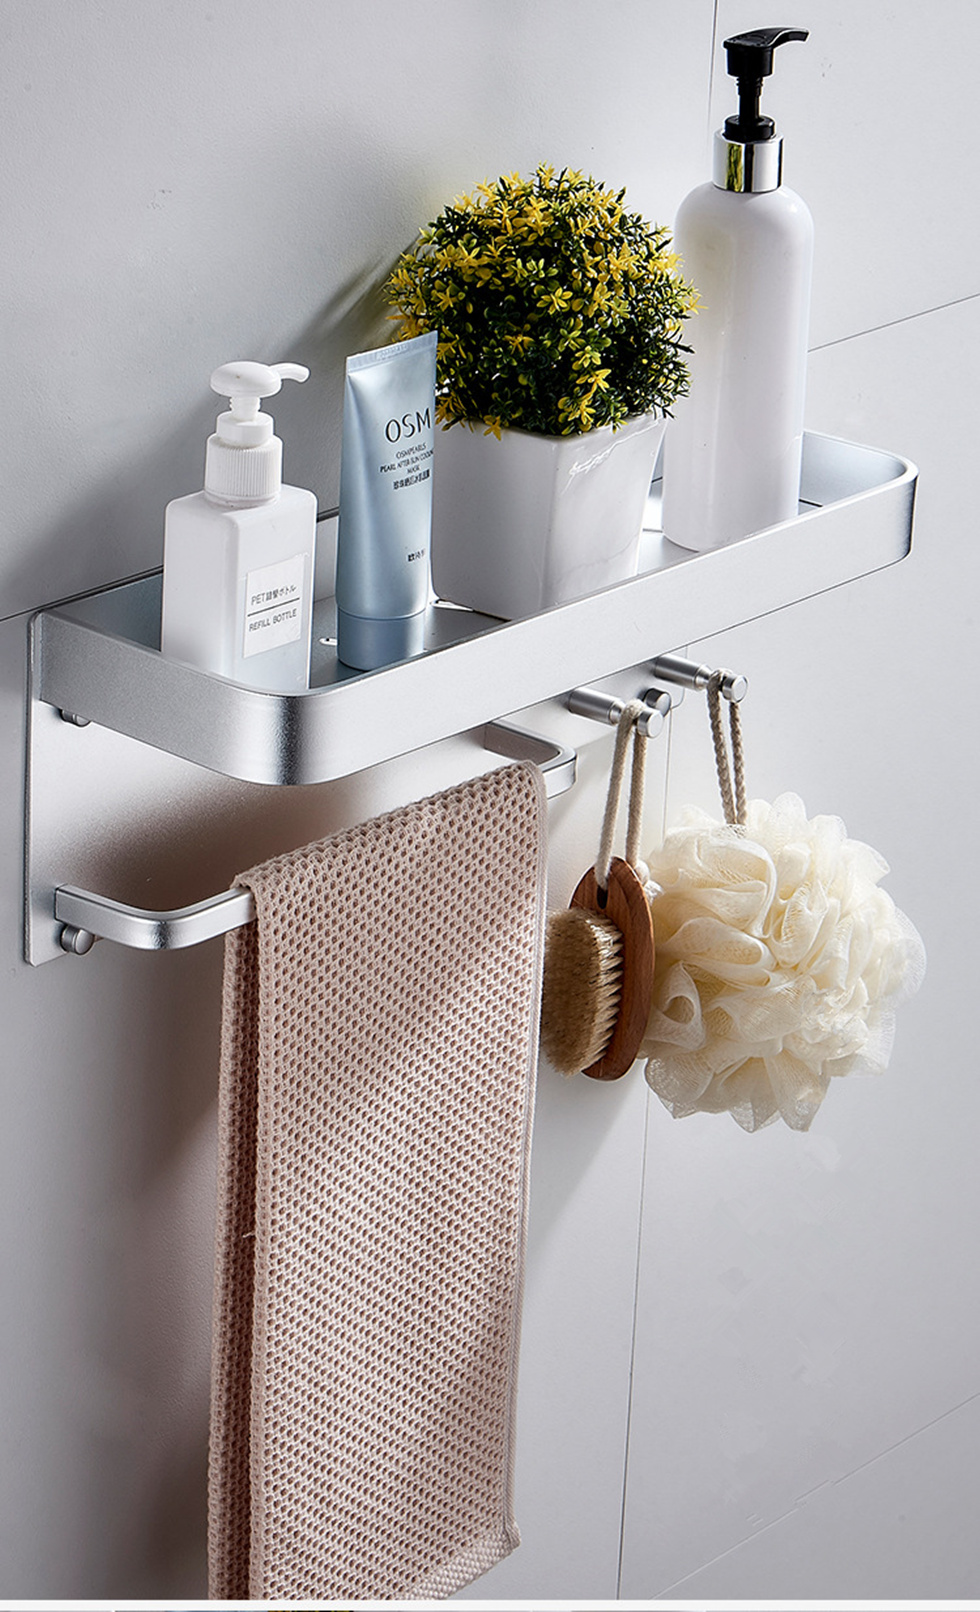 Wall-Mounted Black or Silver Bathroom Organization Shelf with Hooks